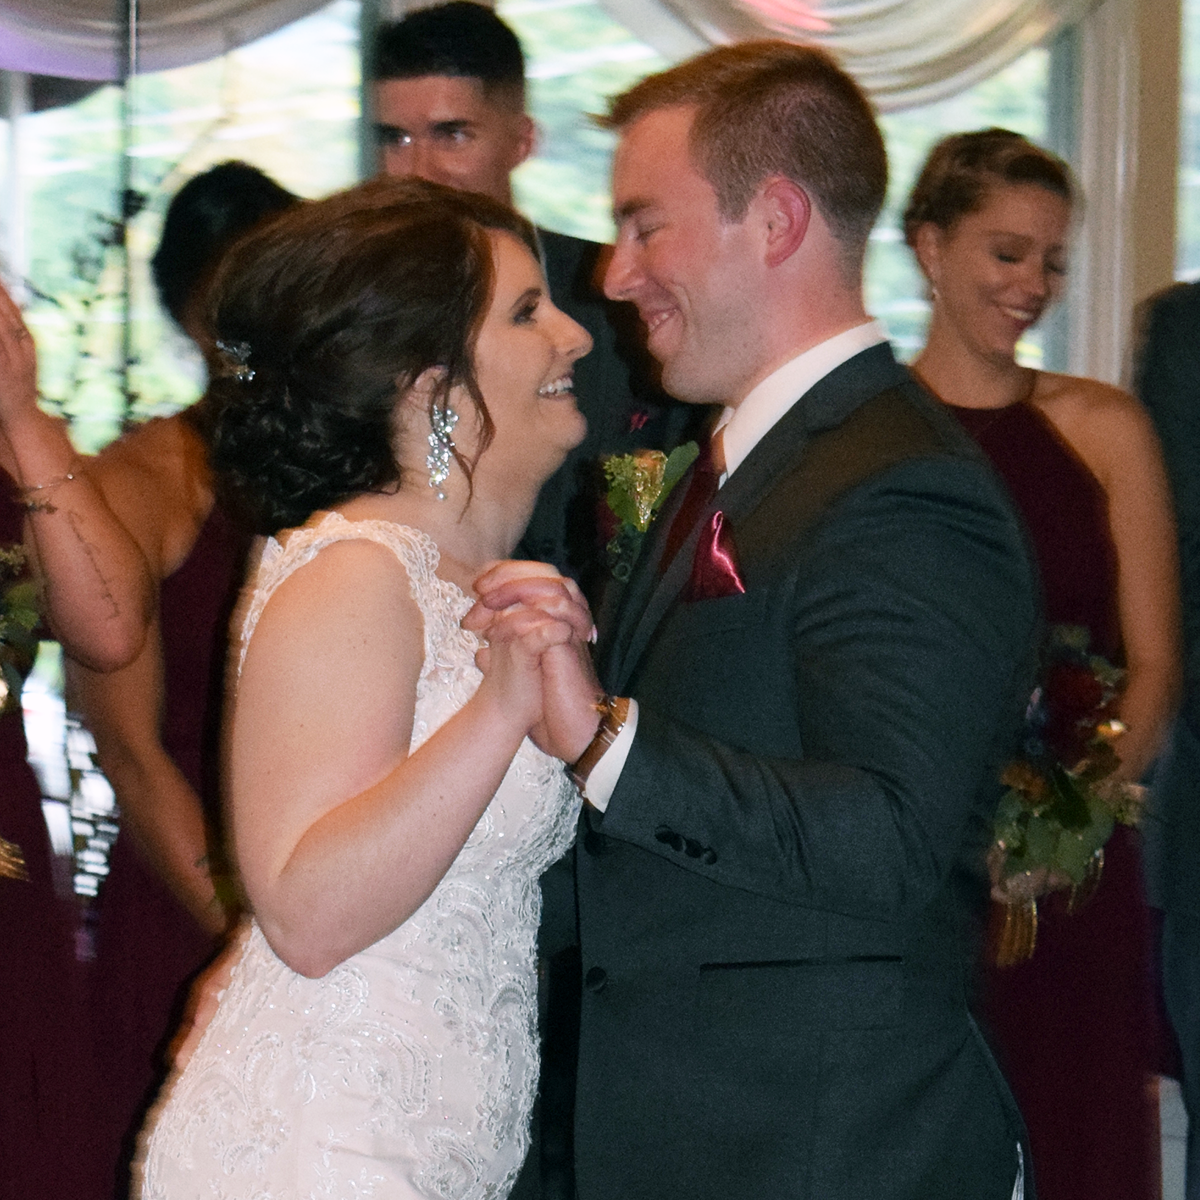 Sarah & Andy's wedding at Daniele's Valley View, Utica, September 2019. Photo by DJ Peter Naughton www.www.peterthedj.com